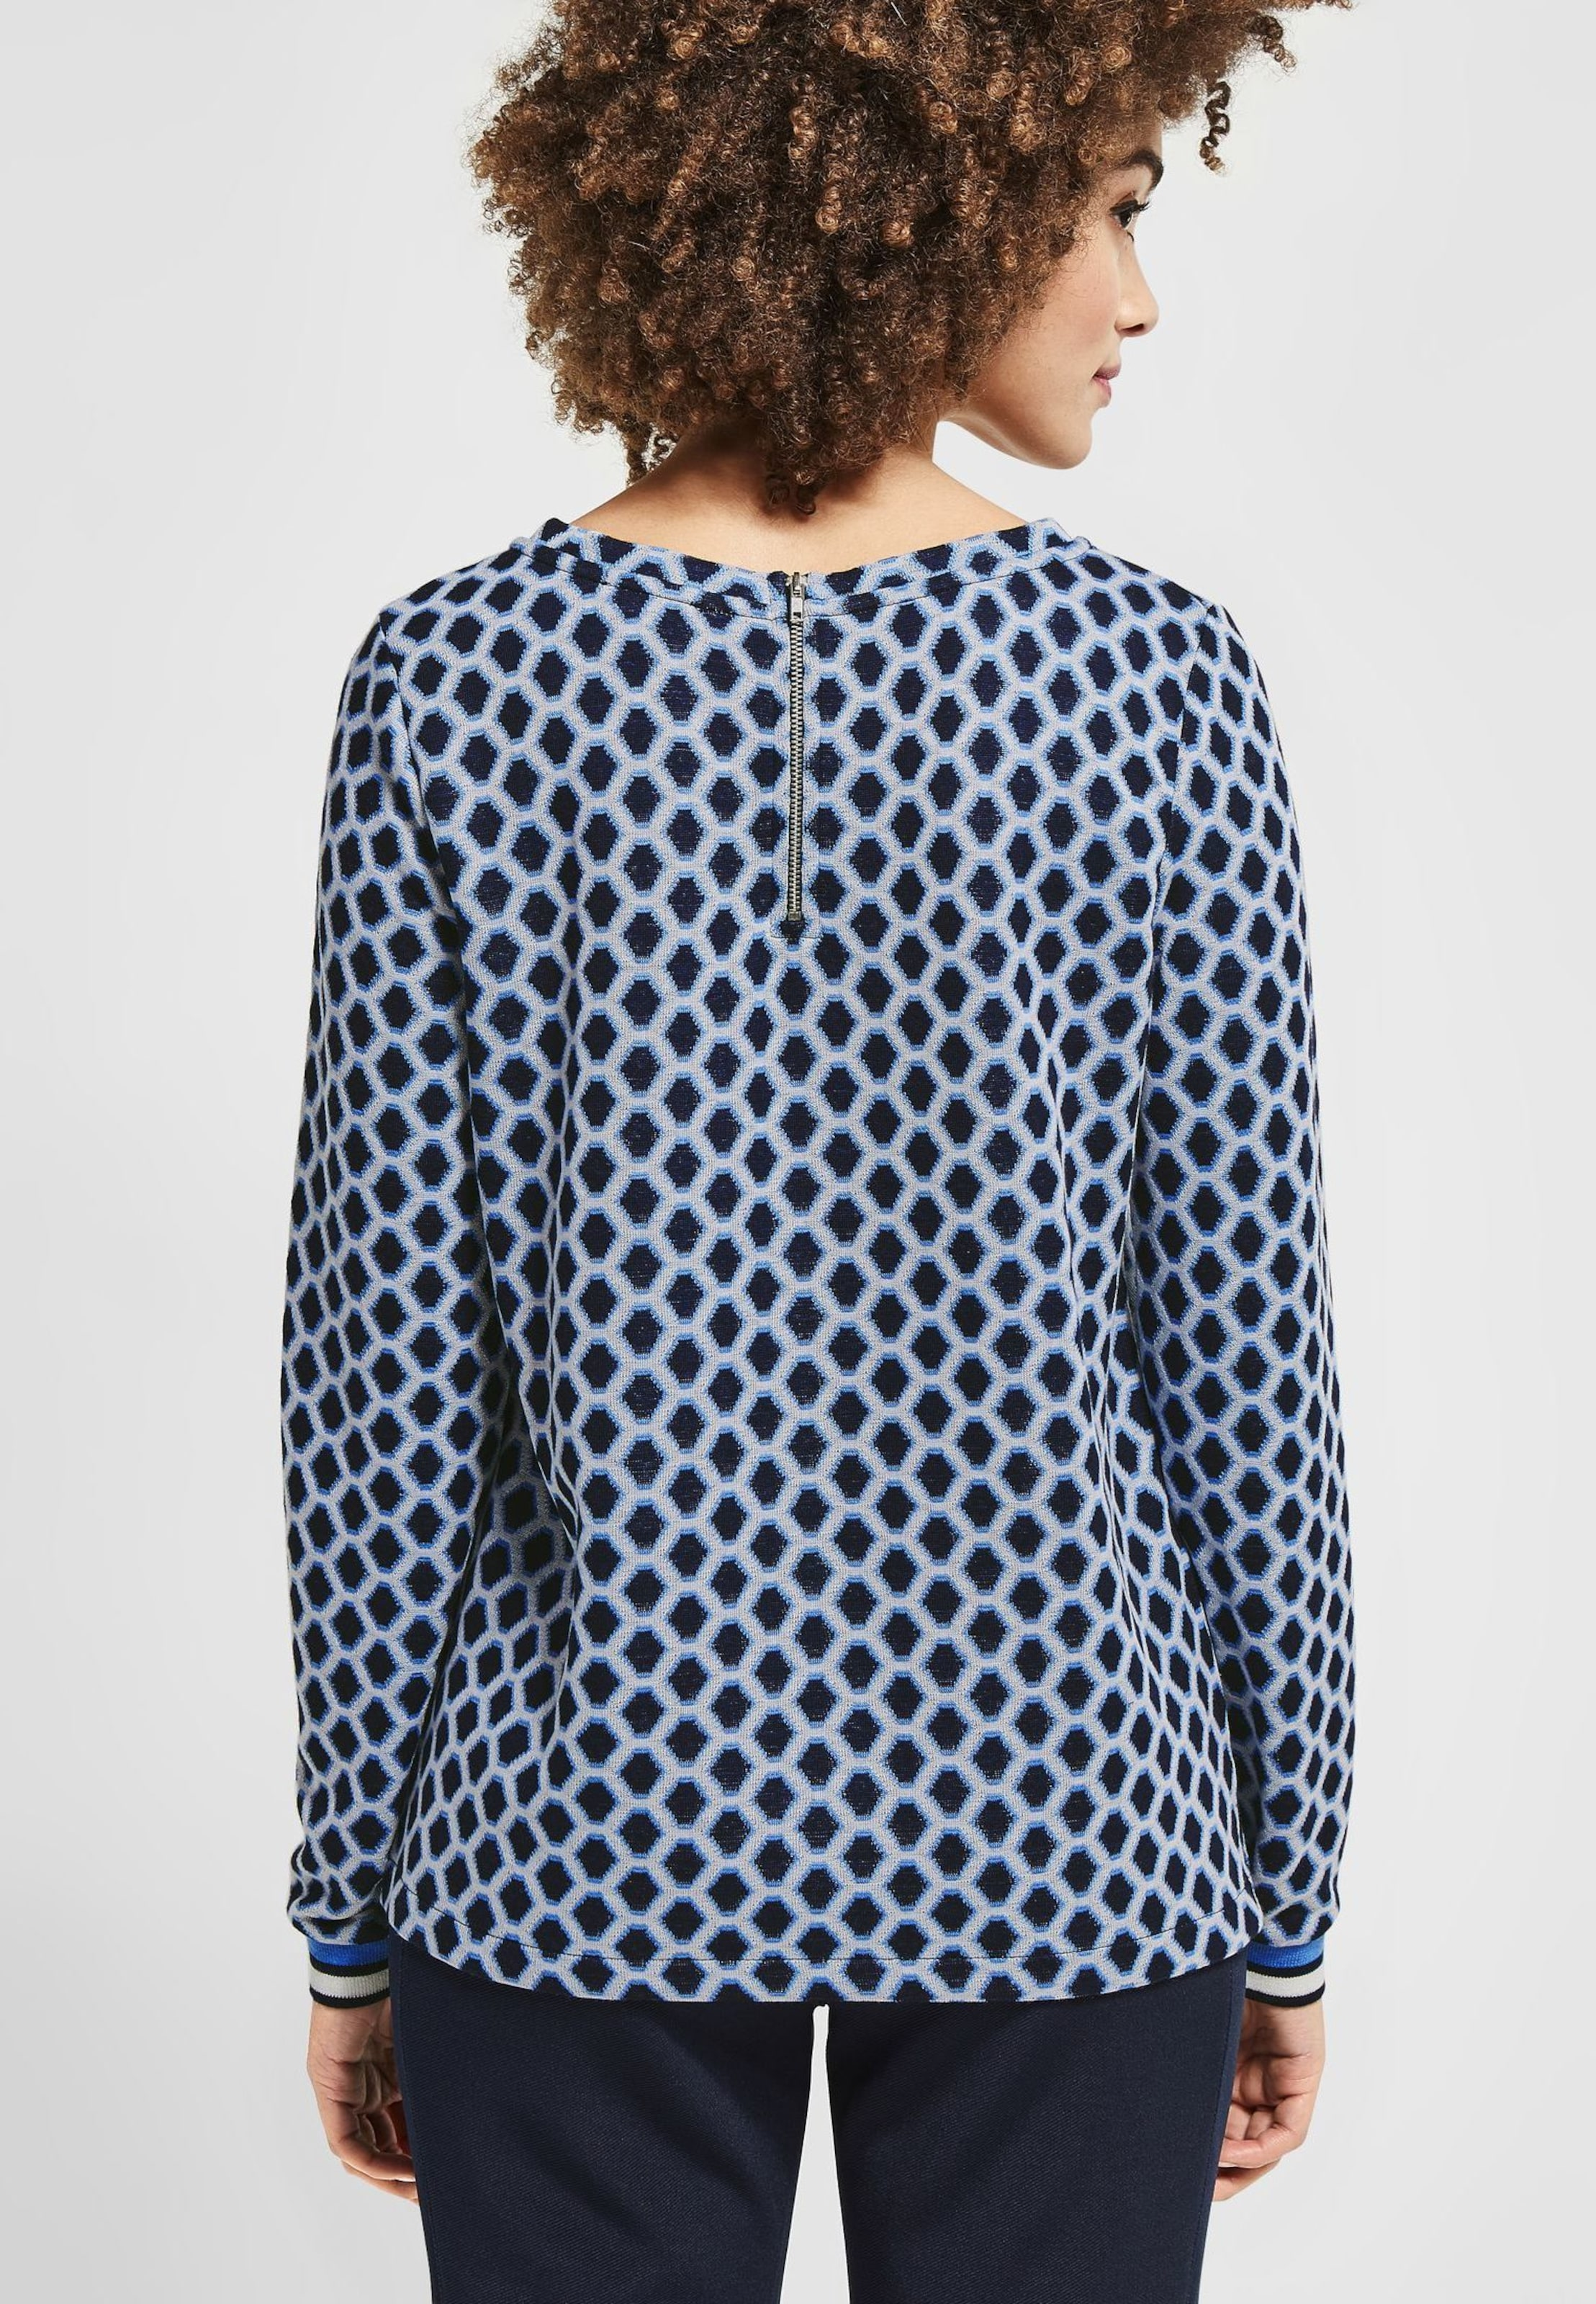 NavyOffwhite 'polly' Shirt Street In One QdxthsrC